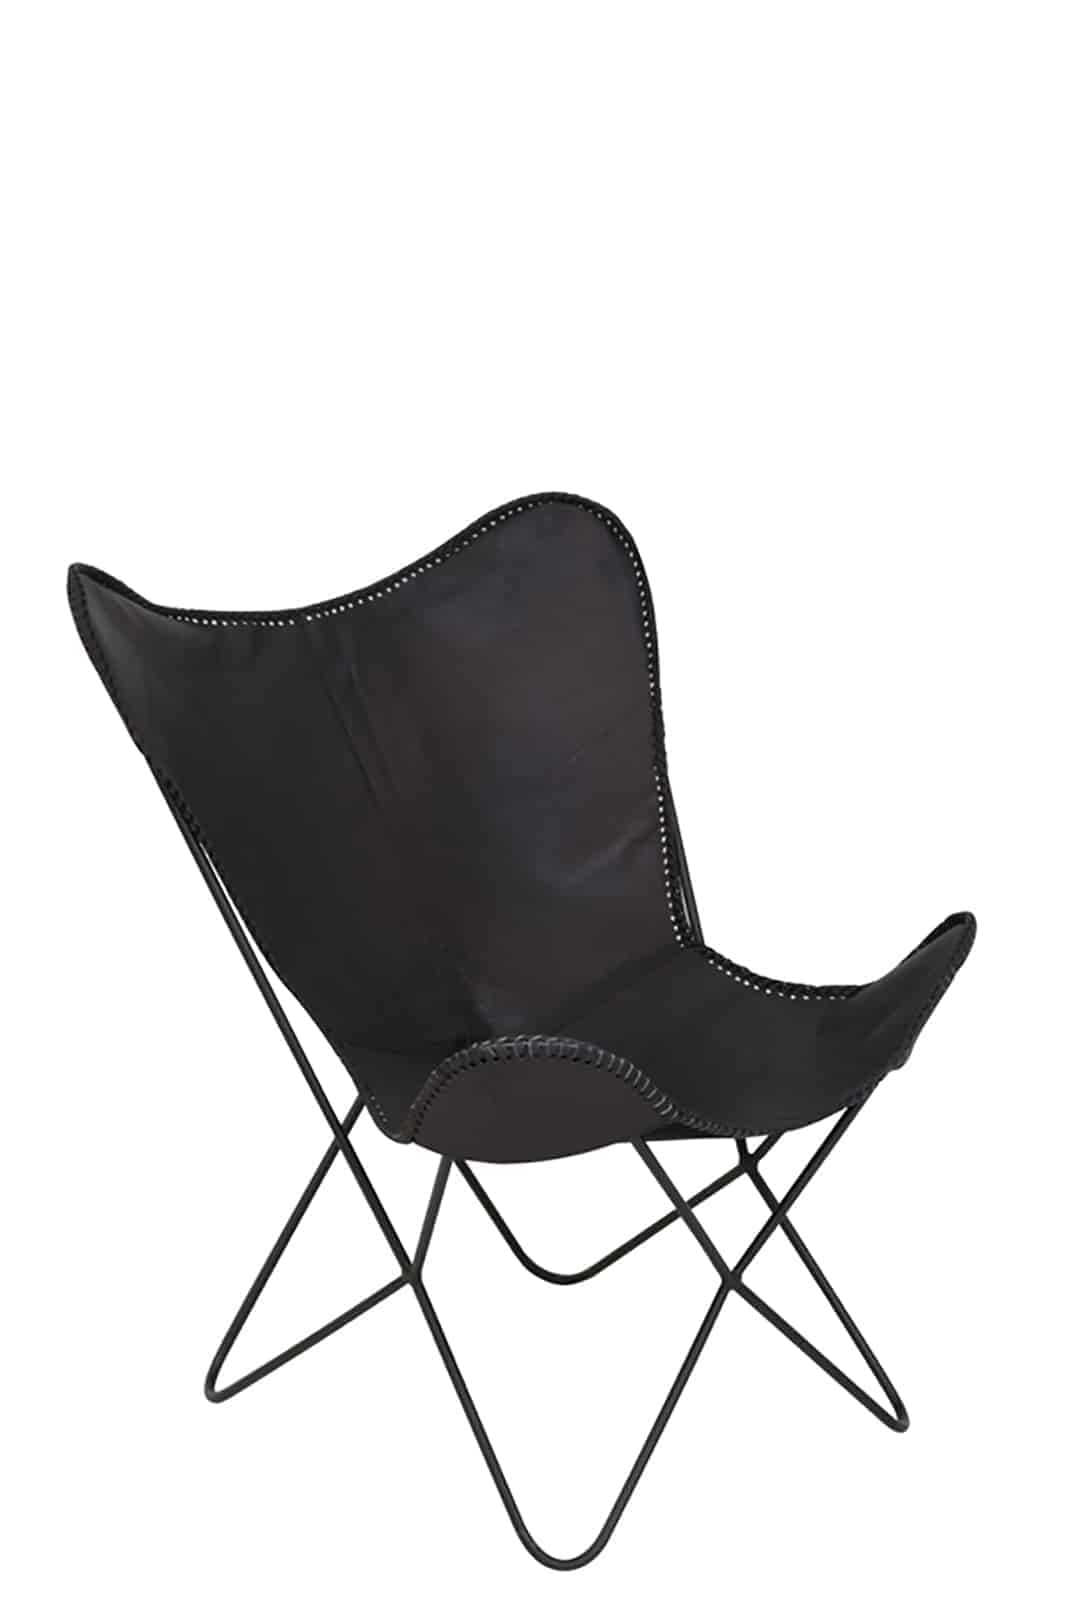 butterfly black leather style chair